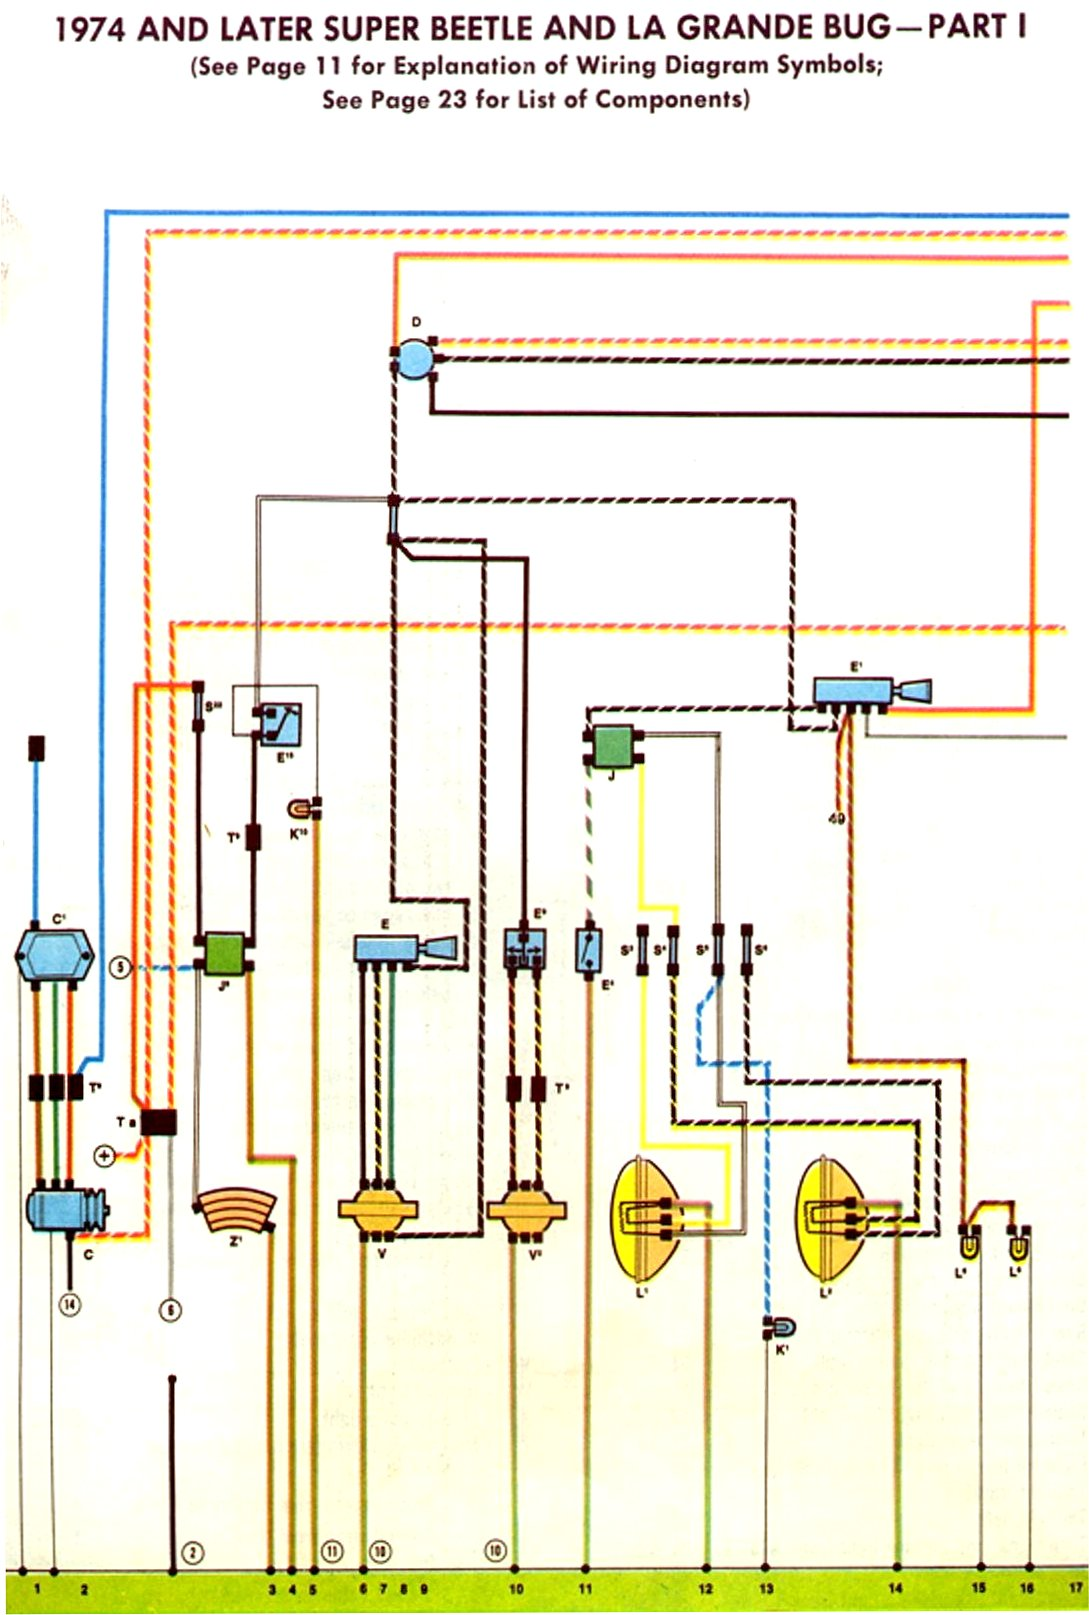 hight resolution of 1974 vw engine diagram wiring diagram sheet 1974 vw beetle engine diagram